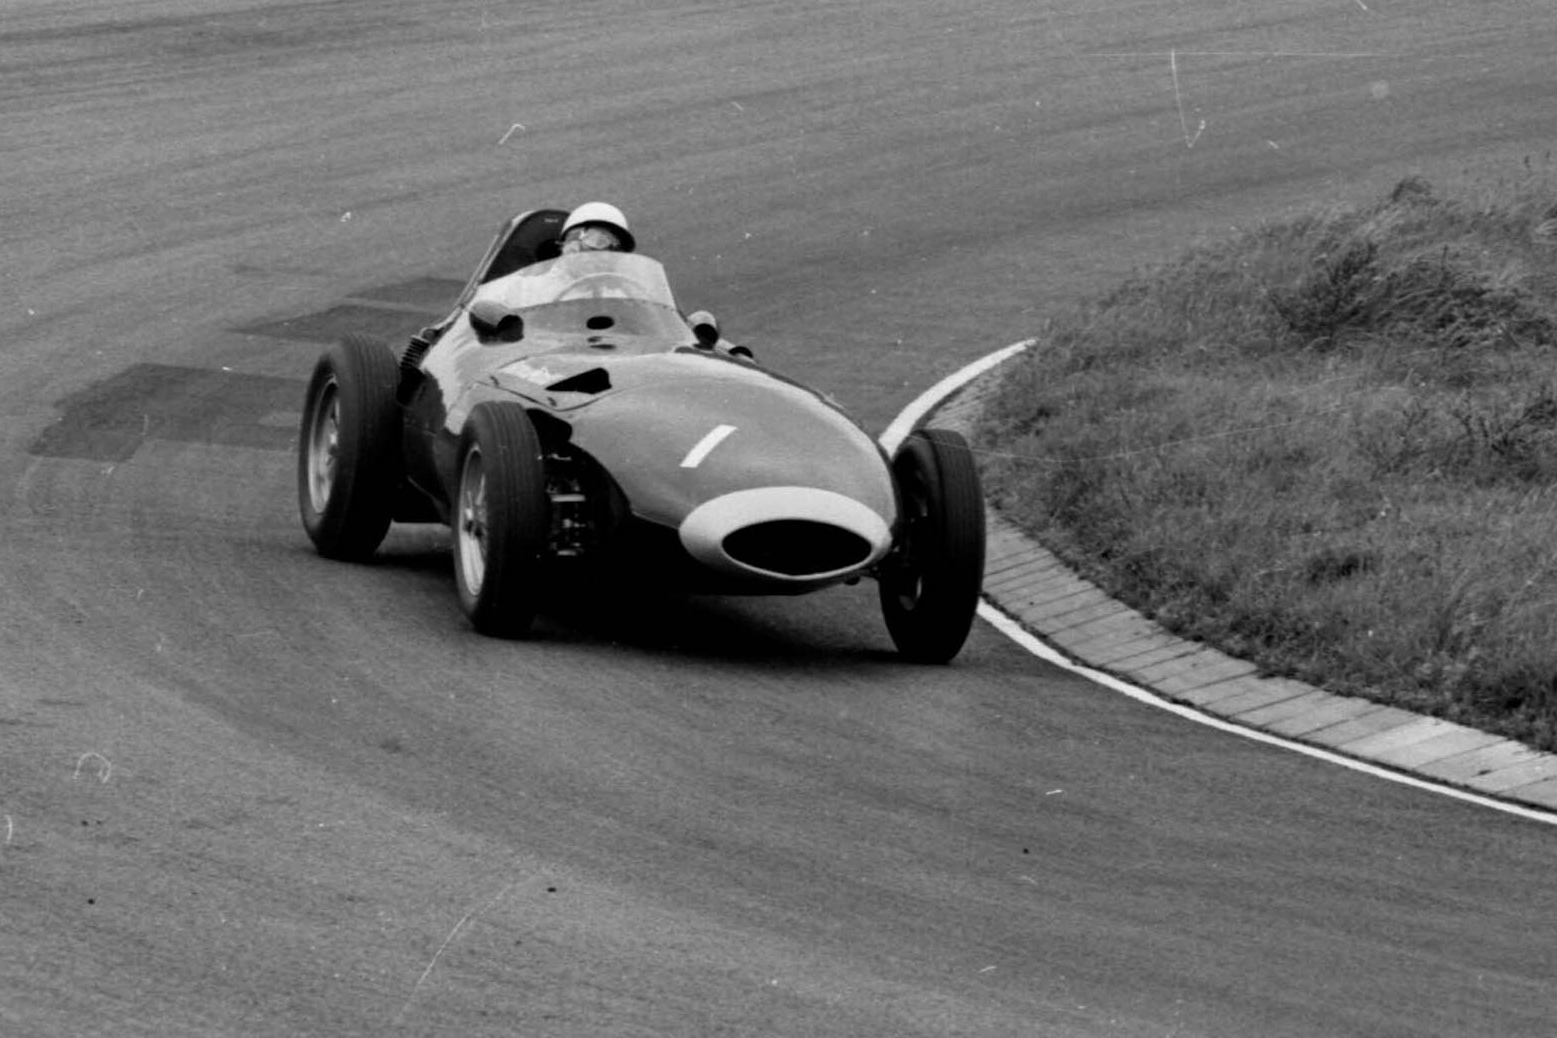 Stirling Moss in 1st postion driving the Vanwall